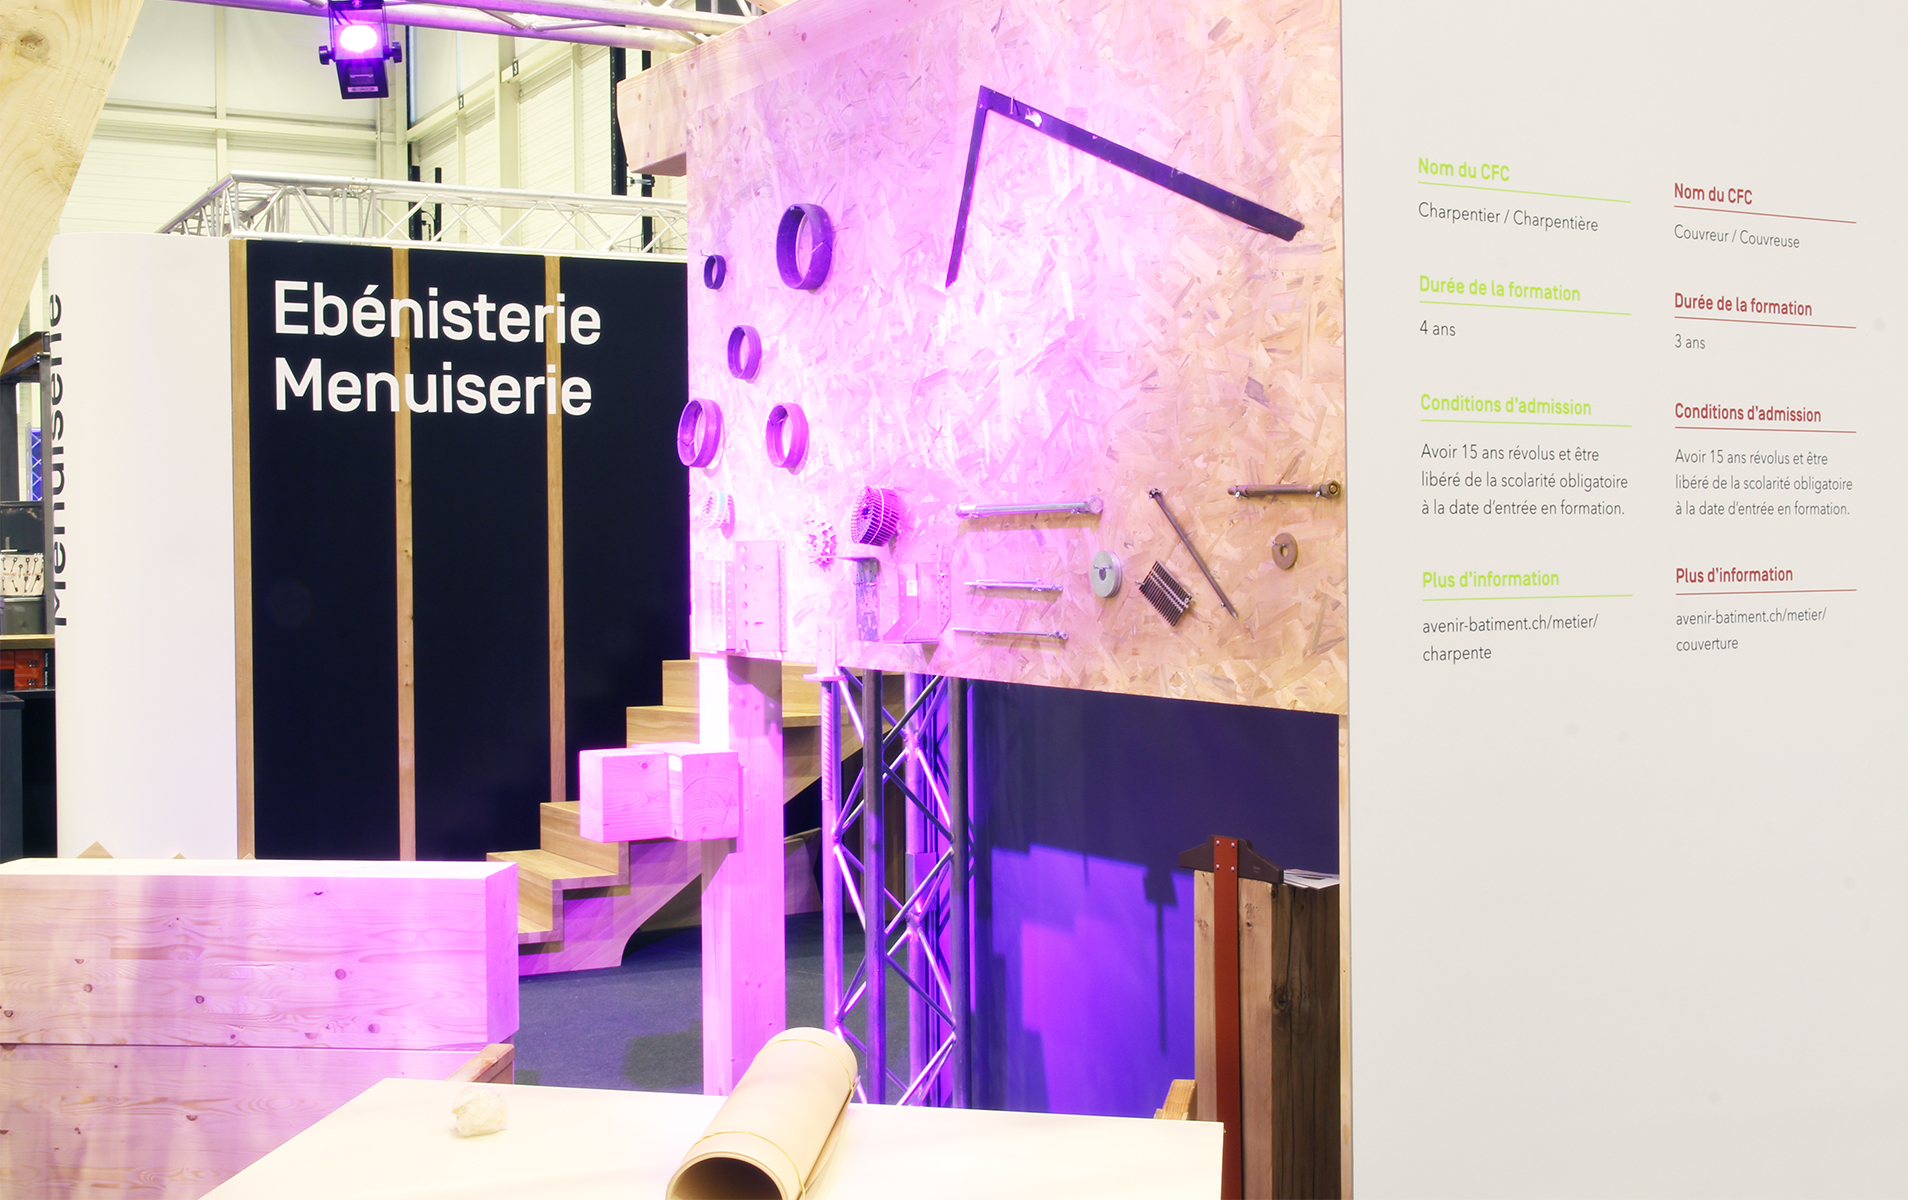 Overview of the inside of a stand displaying the new Avenir Bâtiment branding